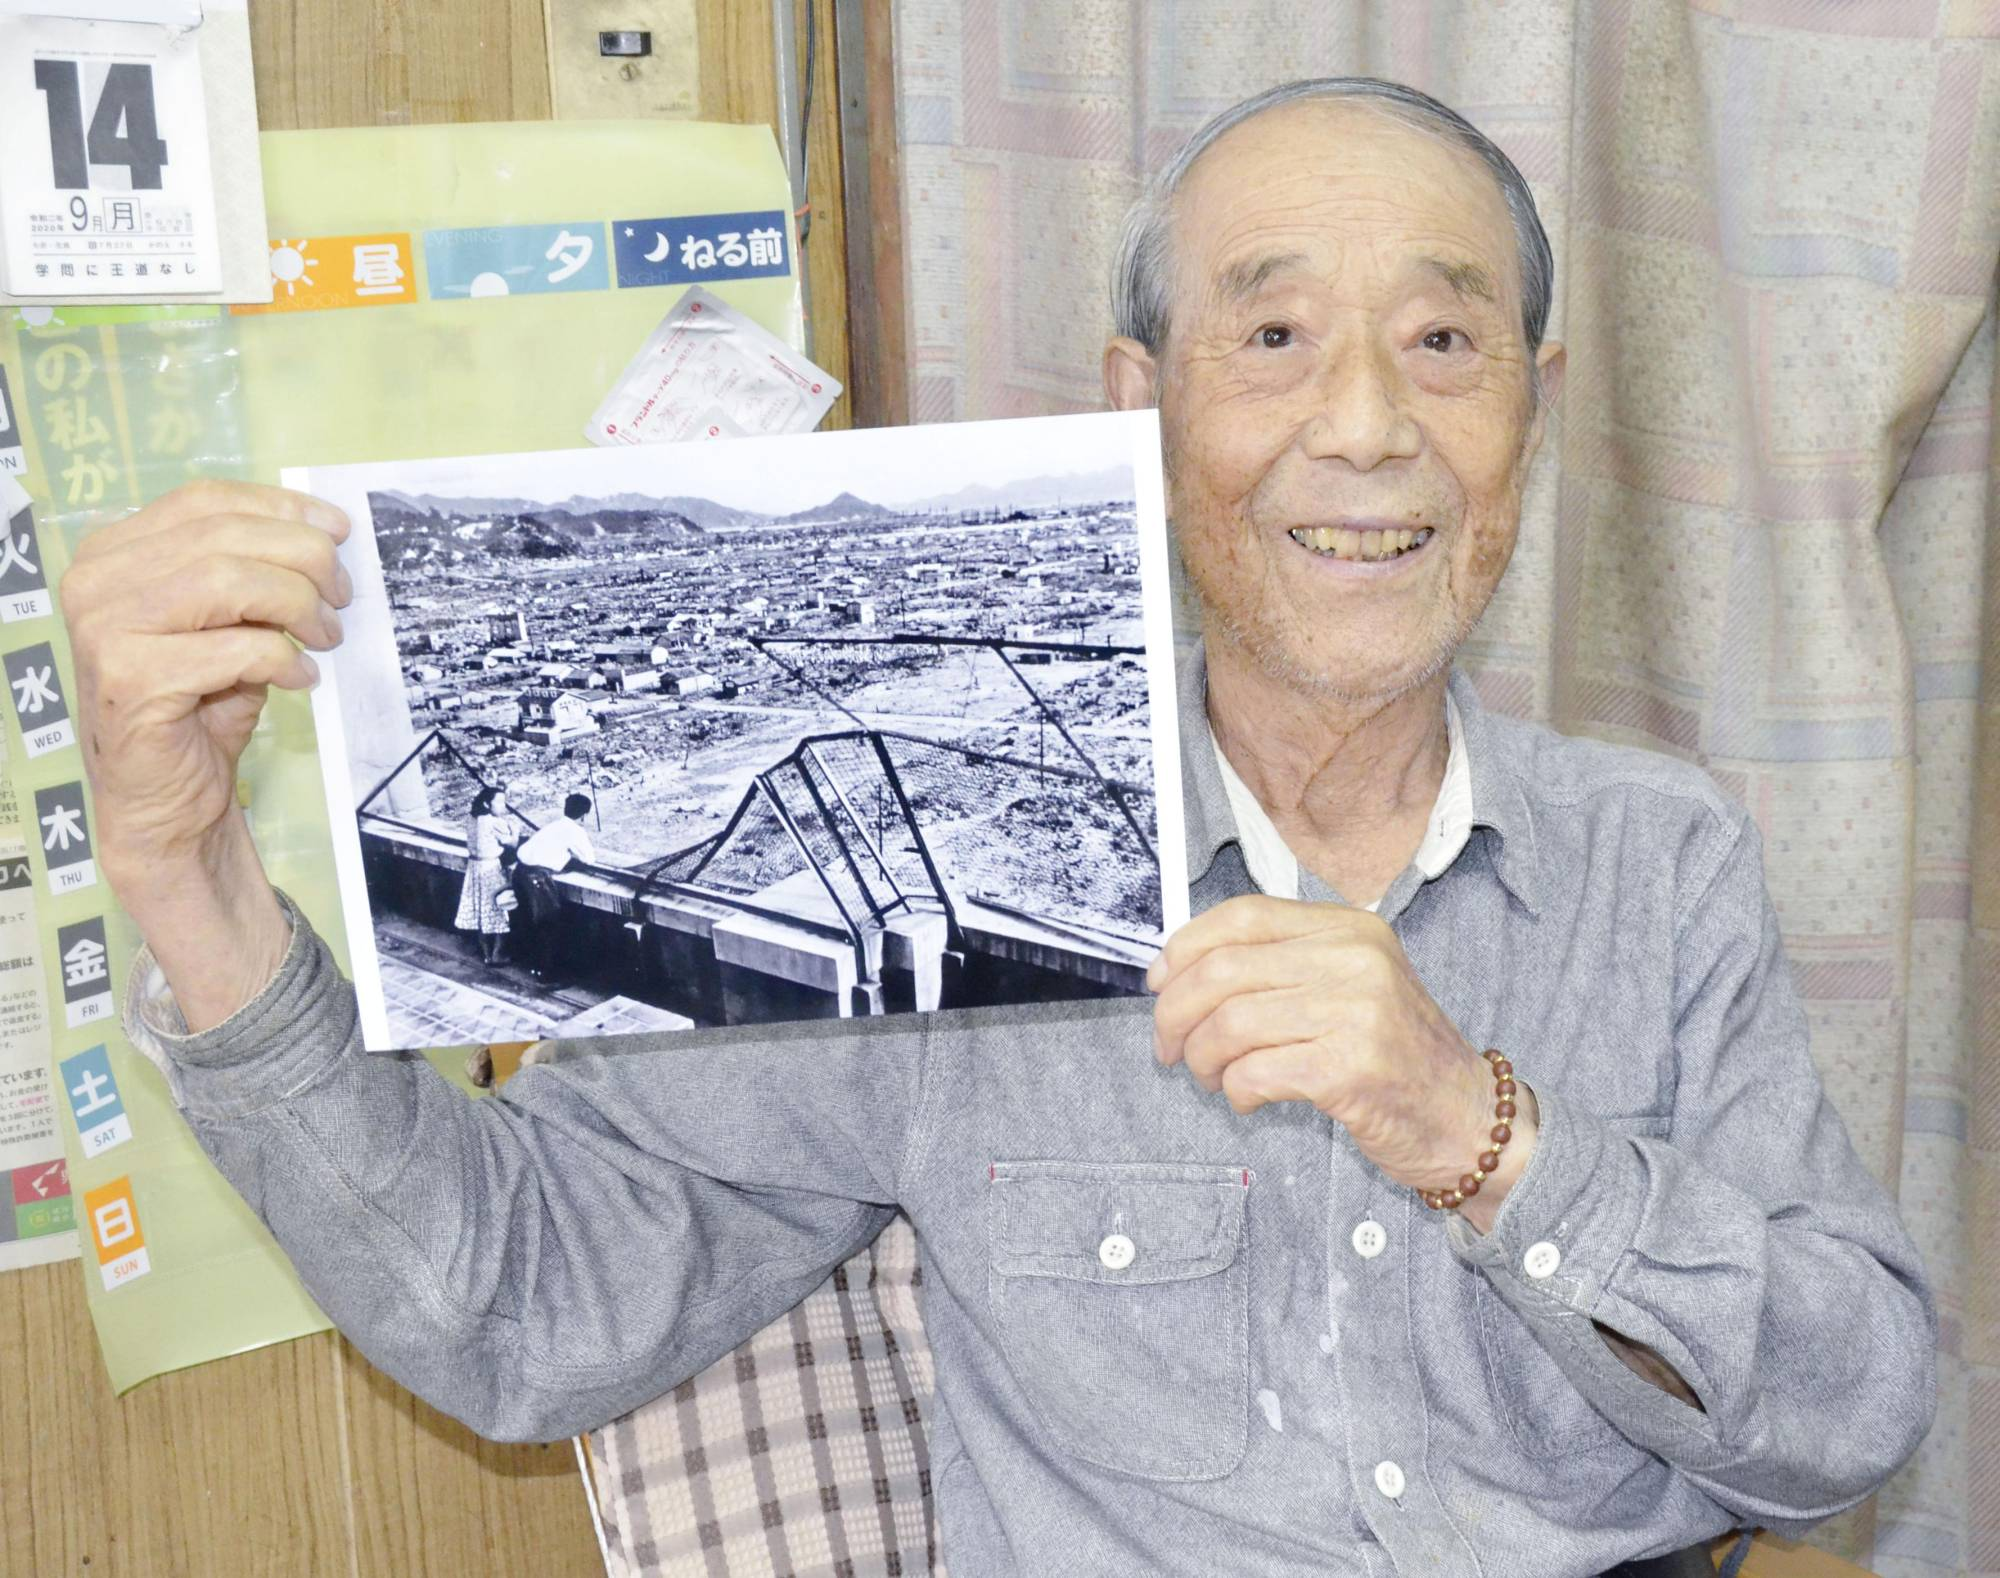 Kiyoshi Kawaue, 90, holds a photograph of him and his late wife looking out over the city of Hiroshima from the top of a building a year after the city was destroyed by a nuclear bomb in 1945.   KYODO